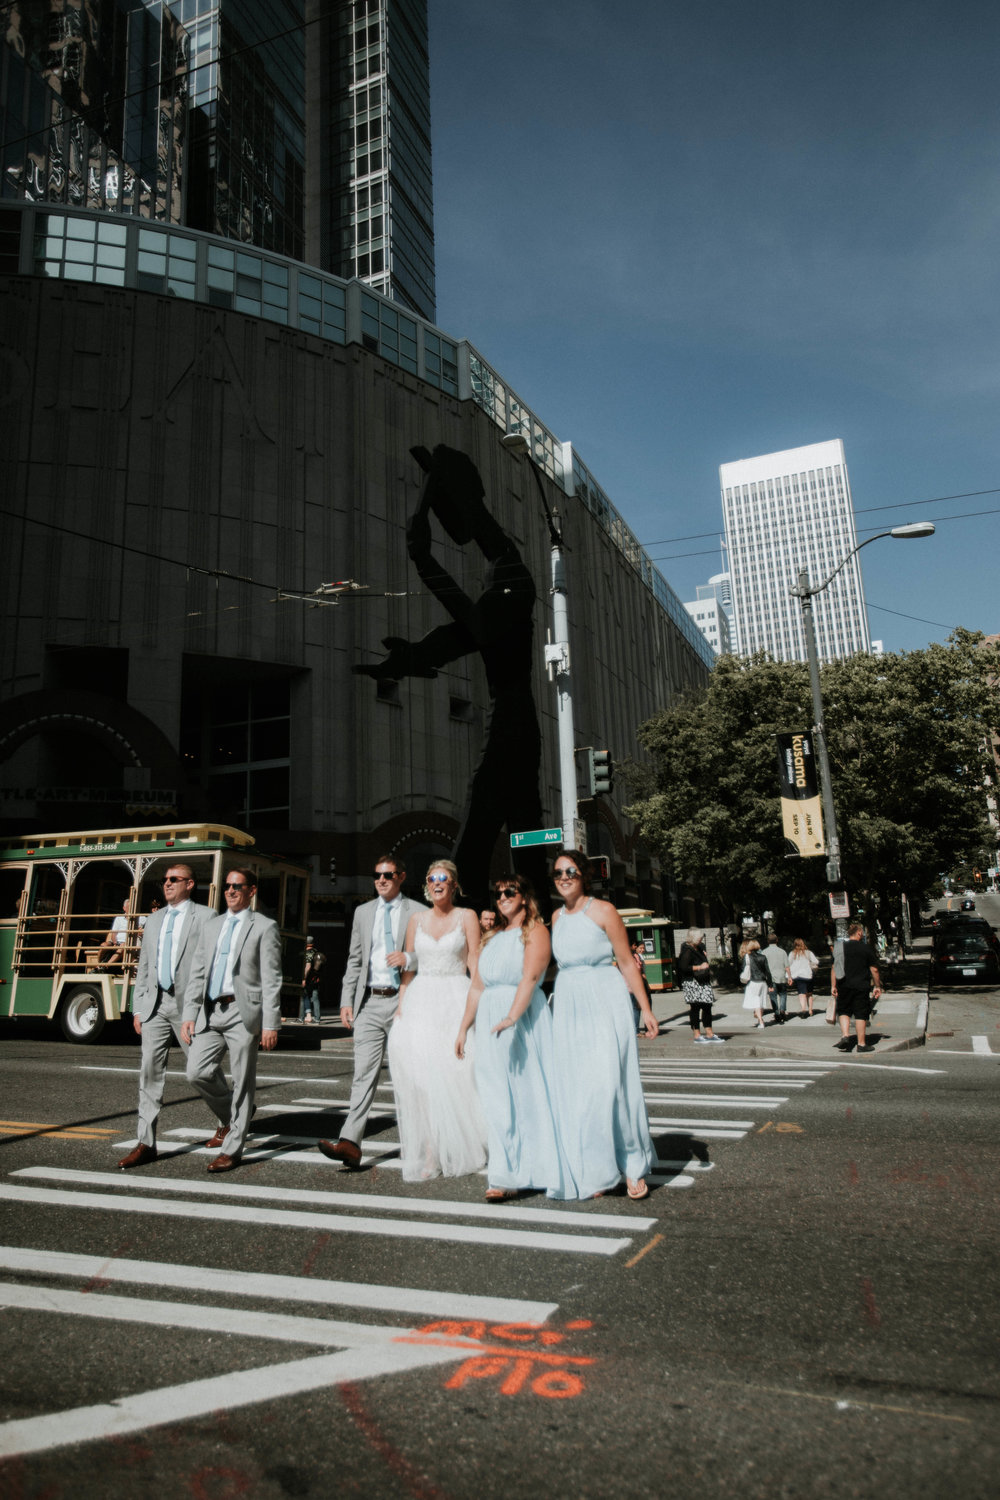 Woodway_Seattle_Wedding_Mark+Patricia_by_Adina_Preston_Weddings_2121.JPG